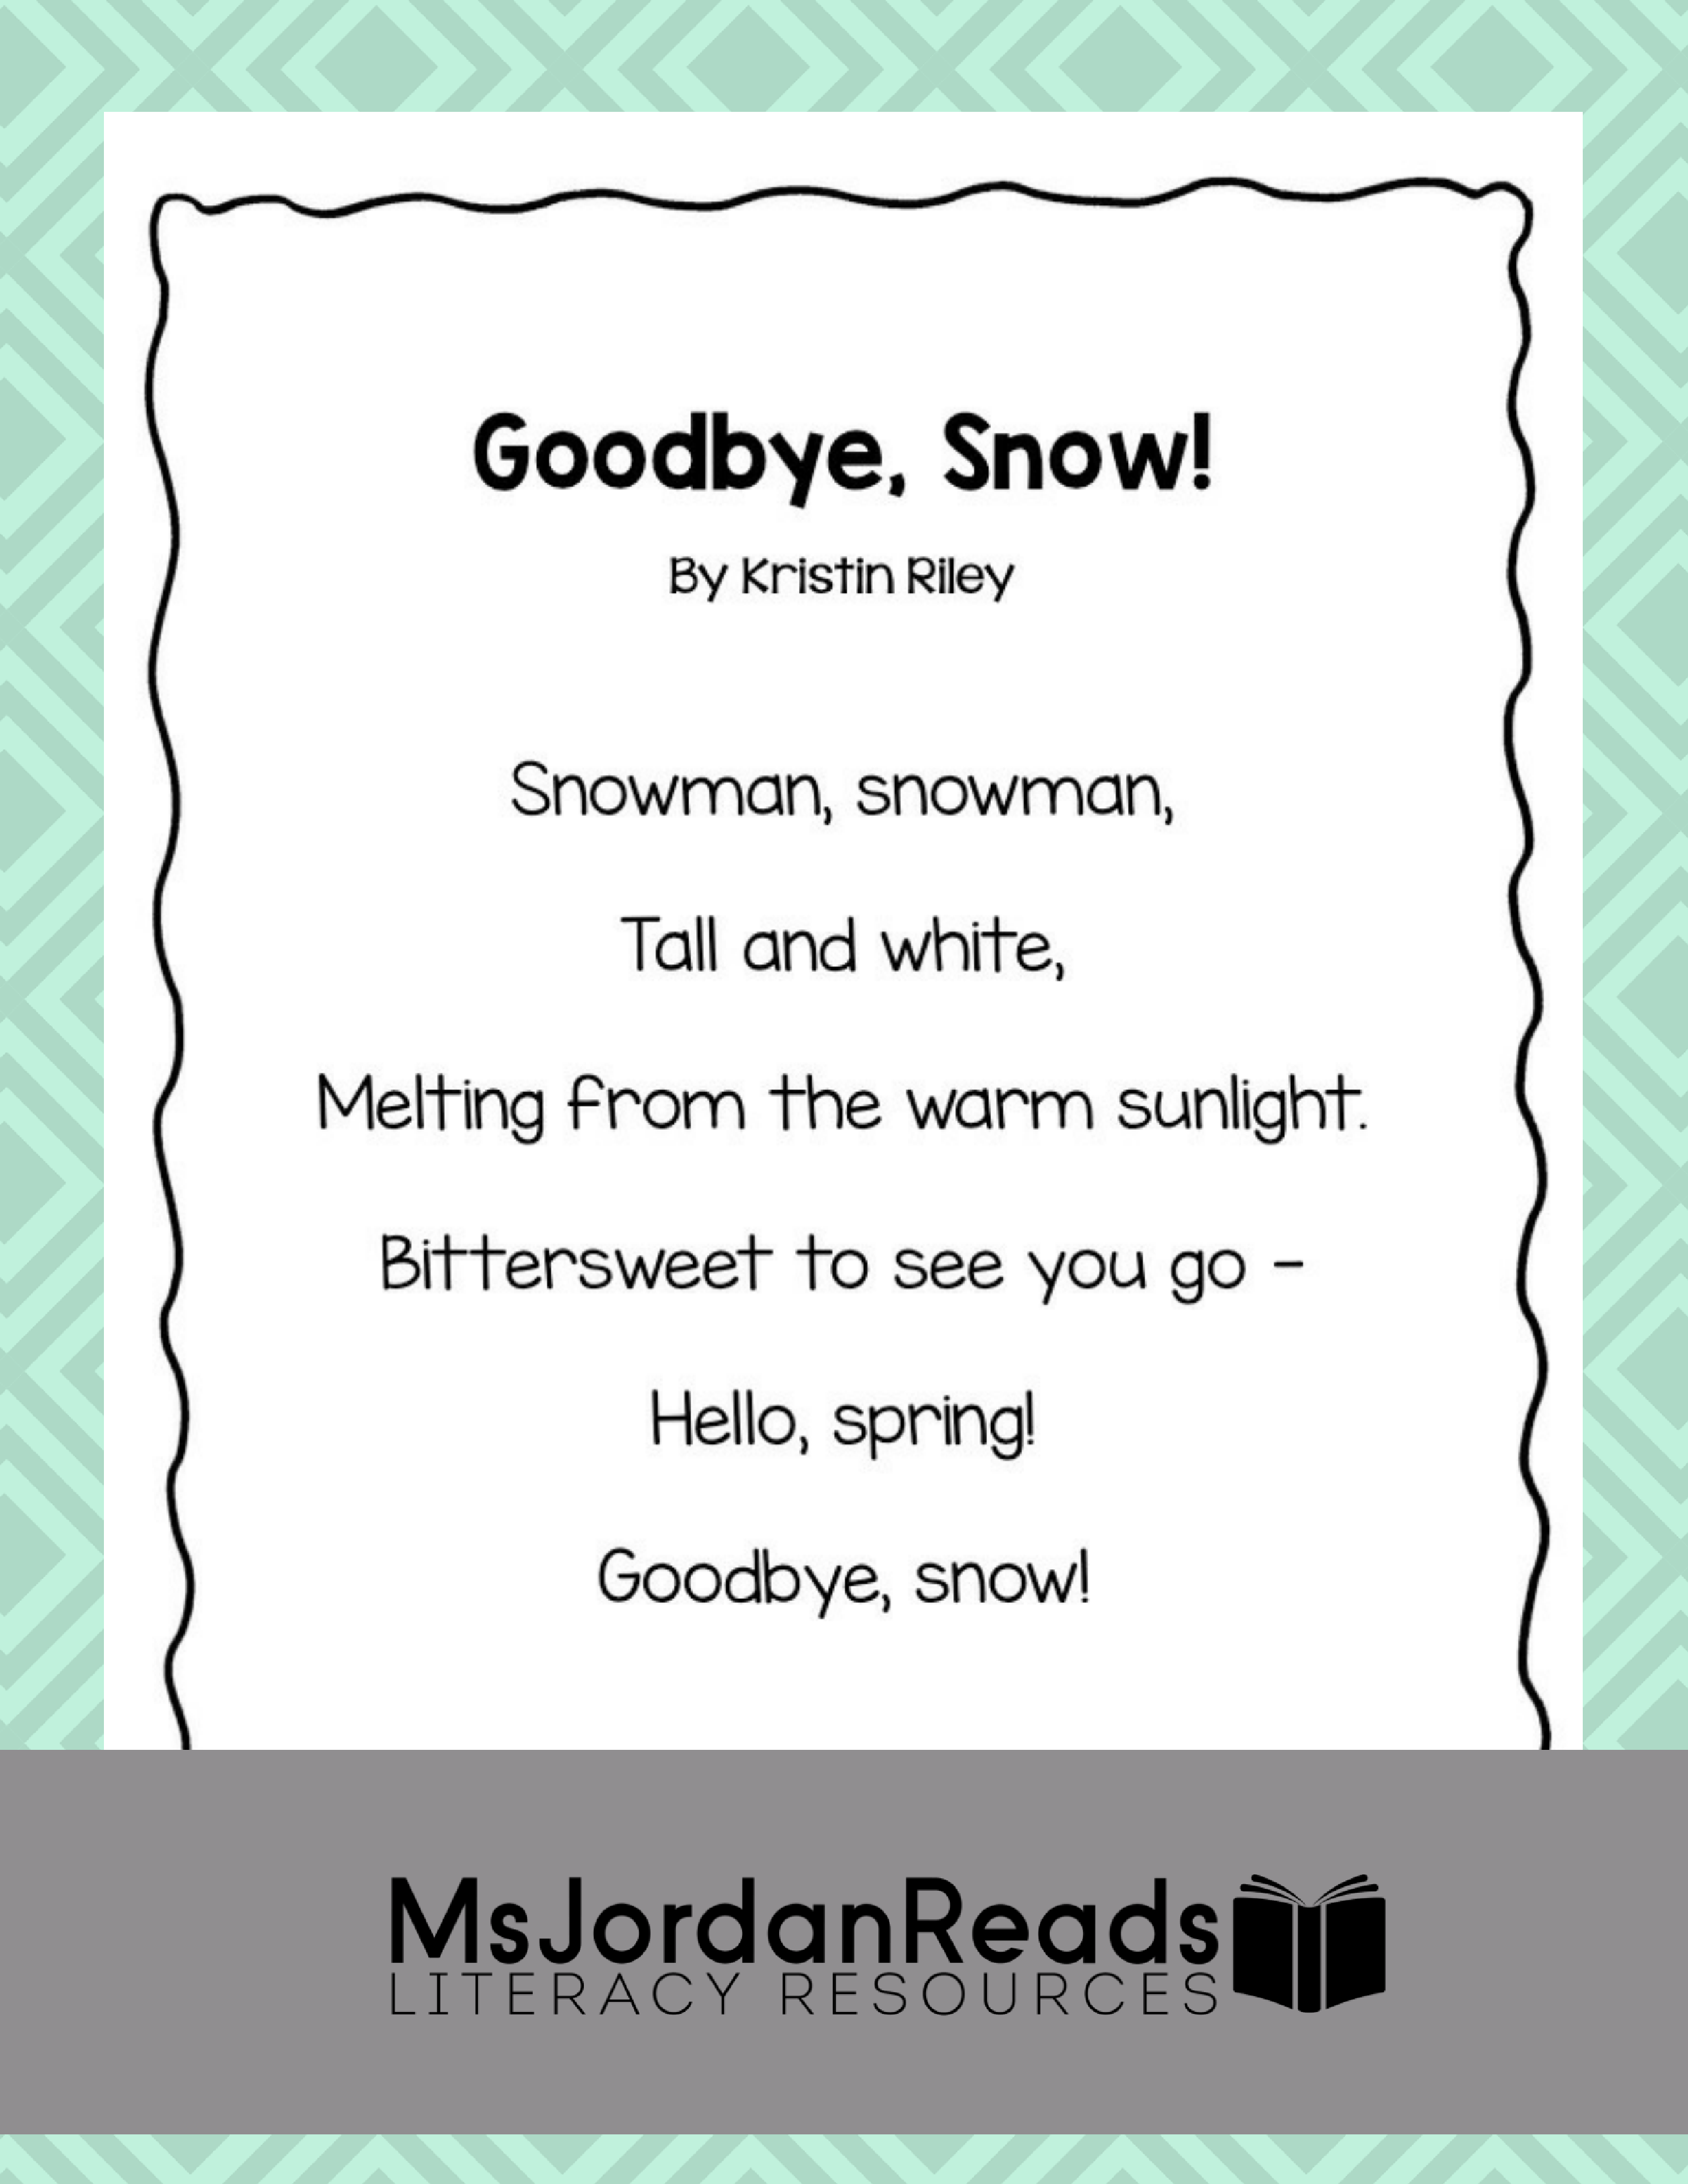 Goodbyesnow poem msjordanreads a free poetry resource for bringing fluency fun into your classroom this spring this poem mightylinksfo